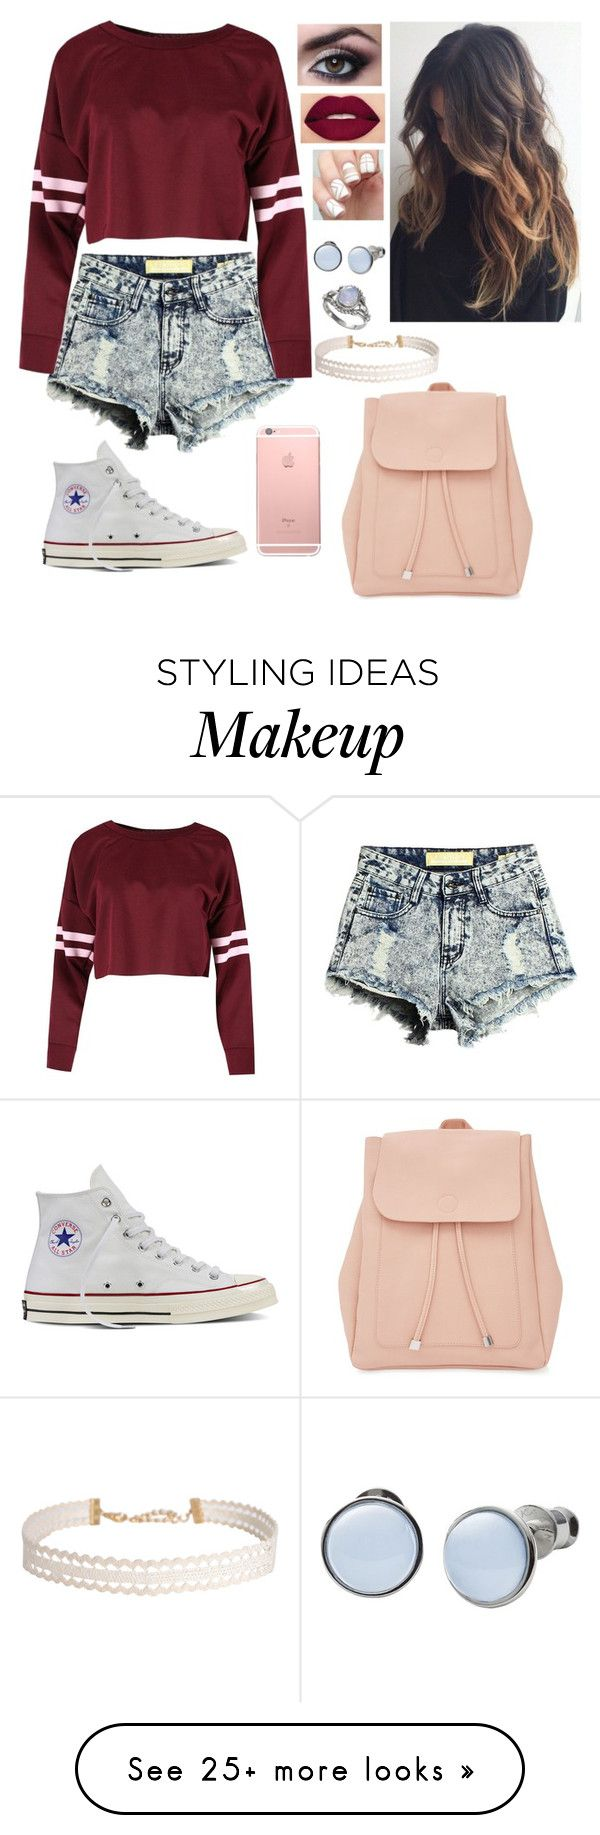 """""""Untitled #68"""" by bubblegumprincess831 on Polyvore featuring Converse, Smashbox, Skagen, Humble Chic and New Look"""